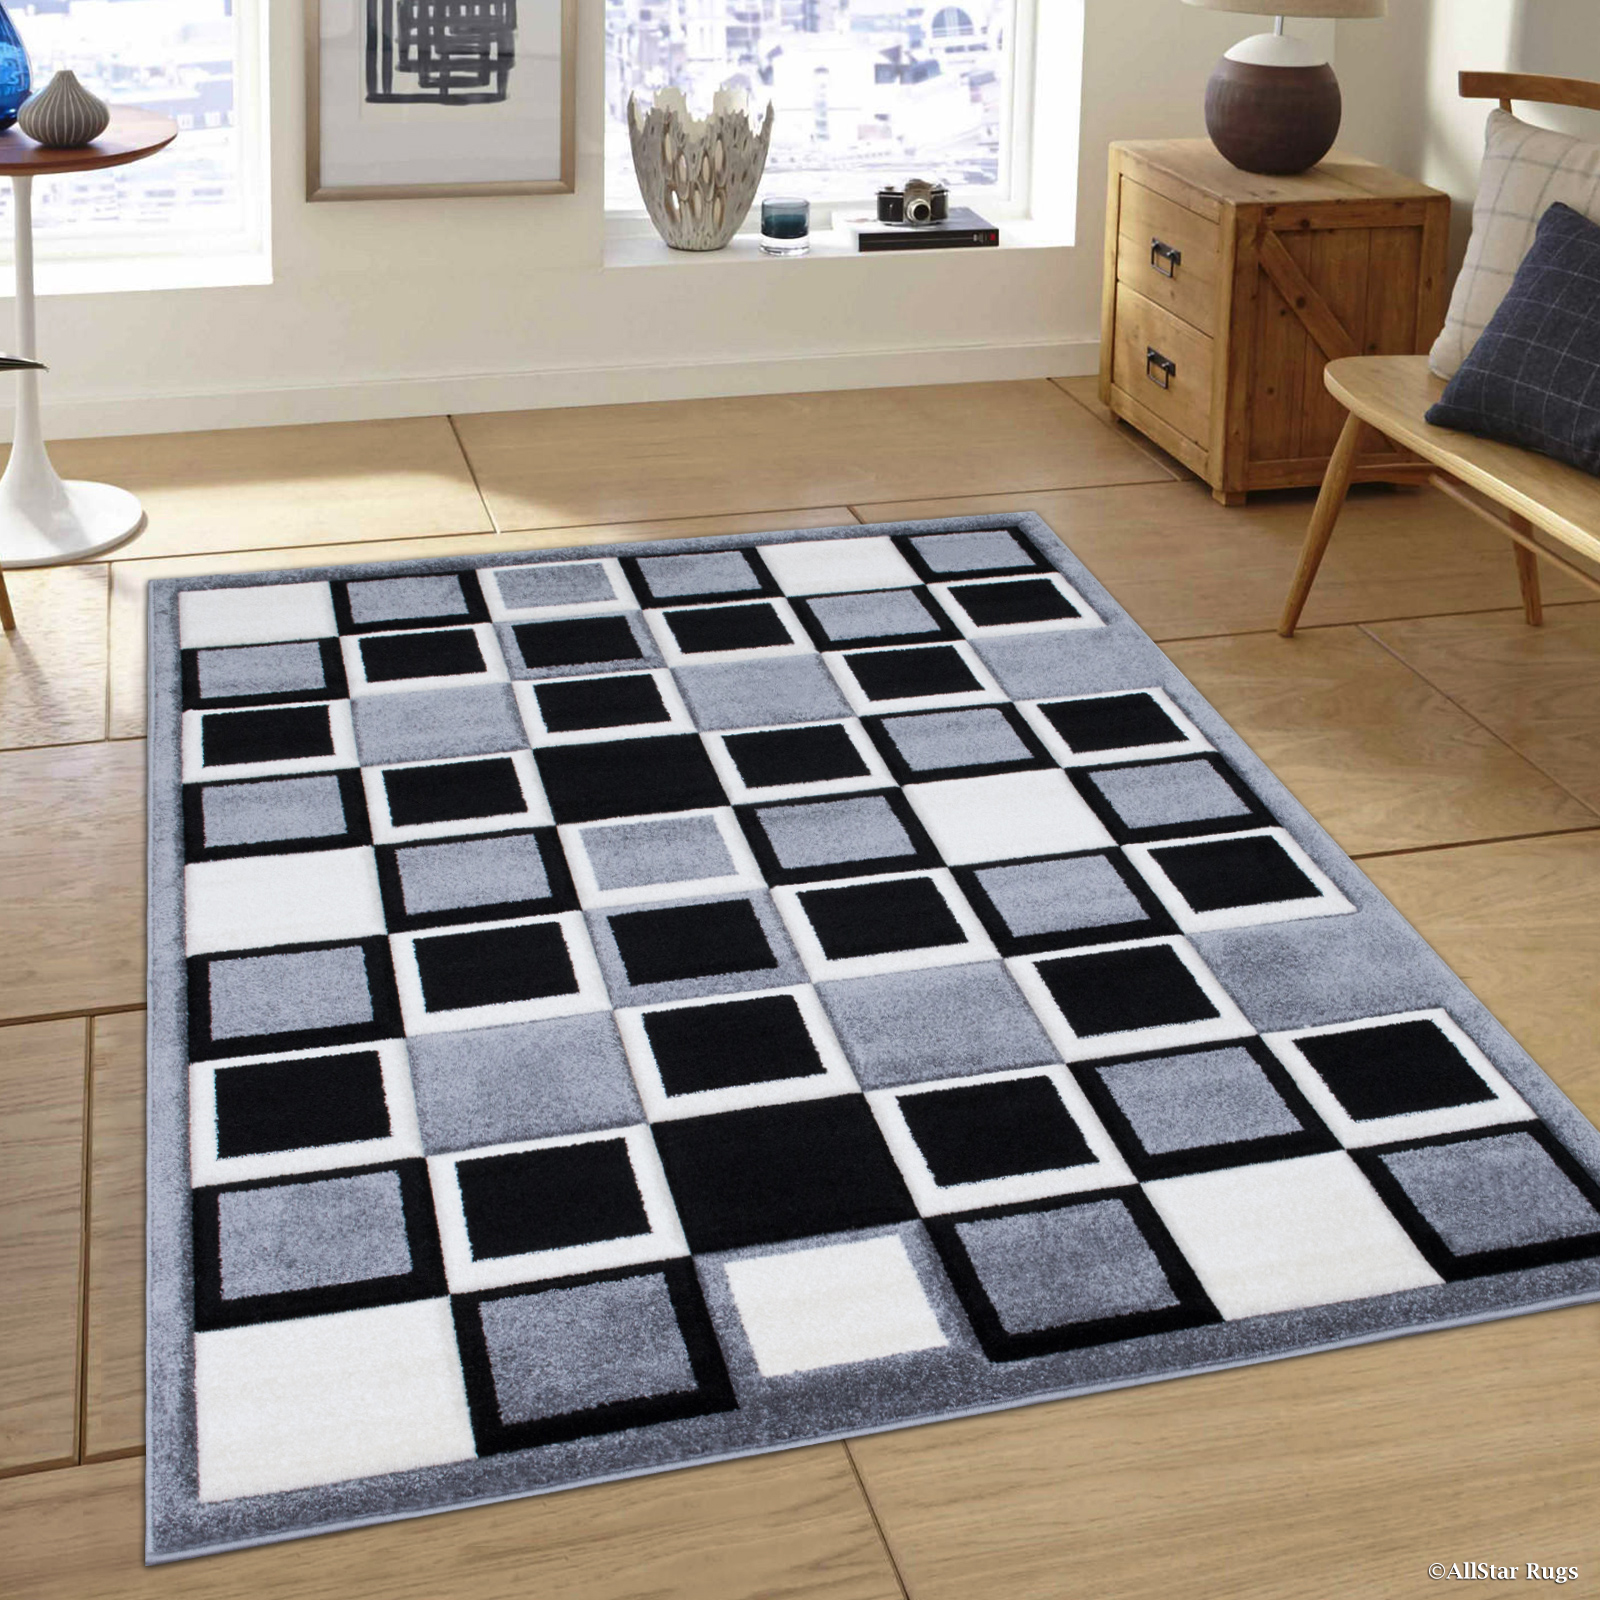 "Allstar Grey Modern Geometric Black Square Formal design Area Rug (7' 9"" x 10' 5"")"